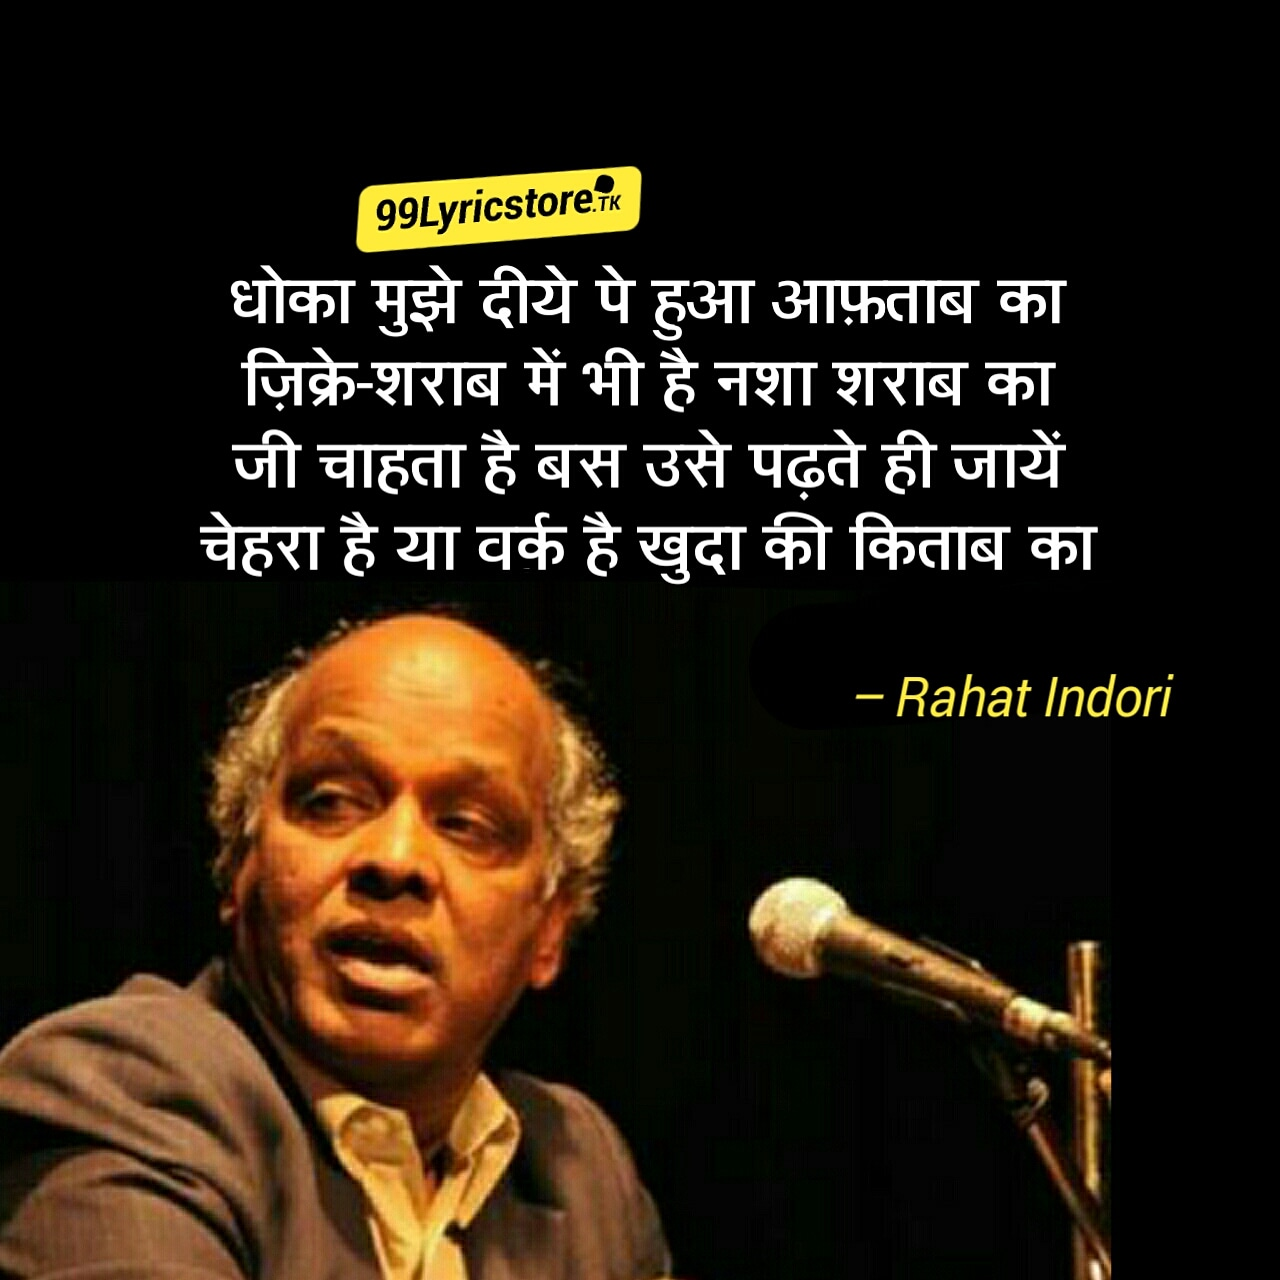 'Dhoka Mujhe Diye Pe Hua Aftaab Ka' written and performed by Rahat Indori. This poetry is best Ghazal and Shayari of Rahat Indori.